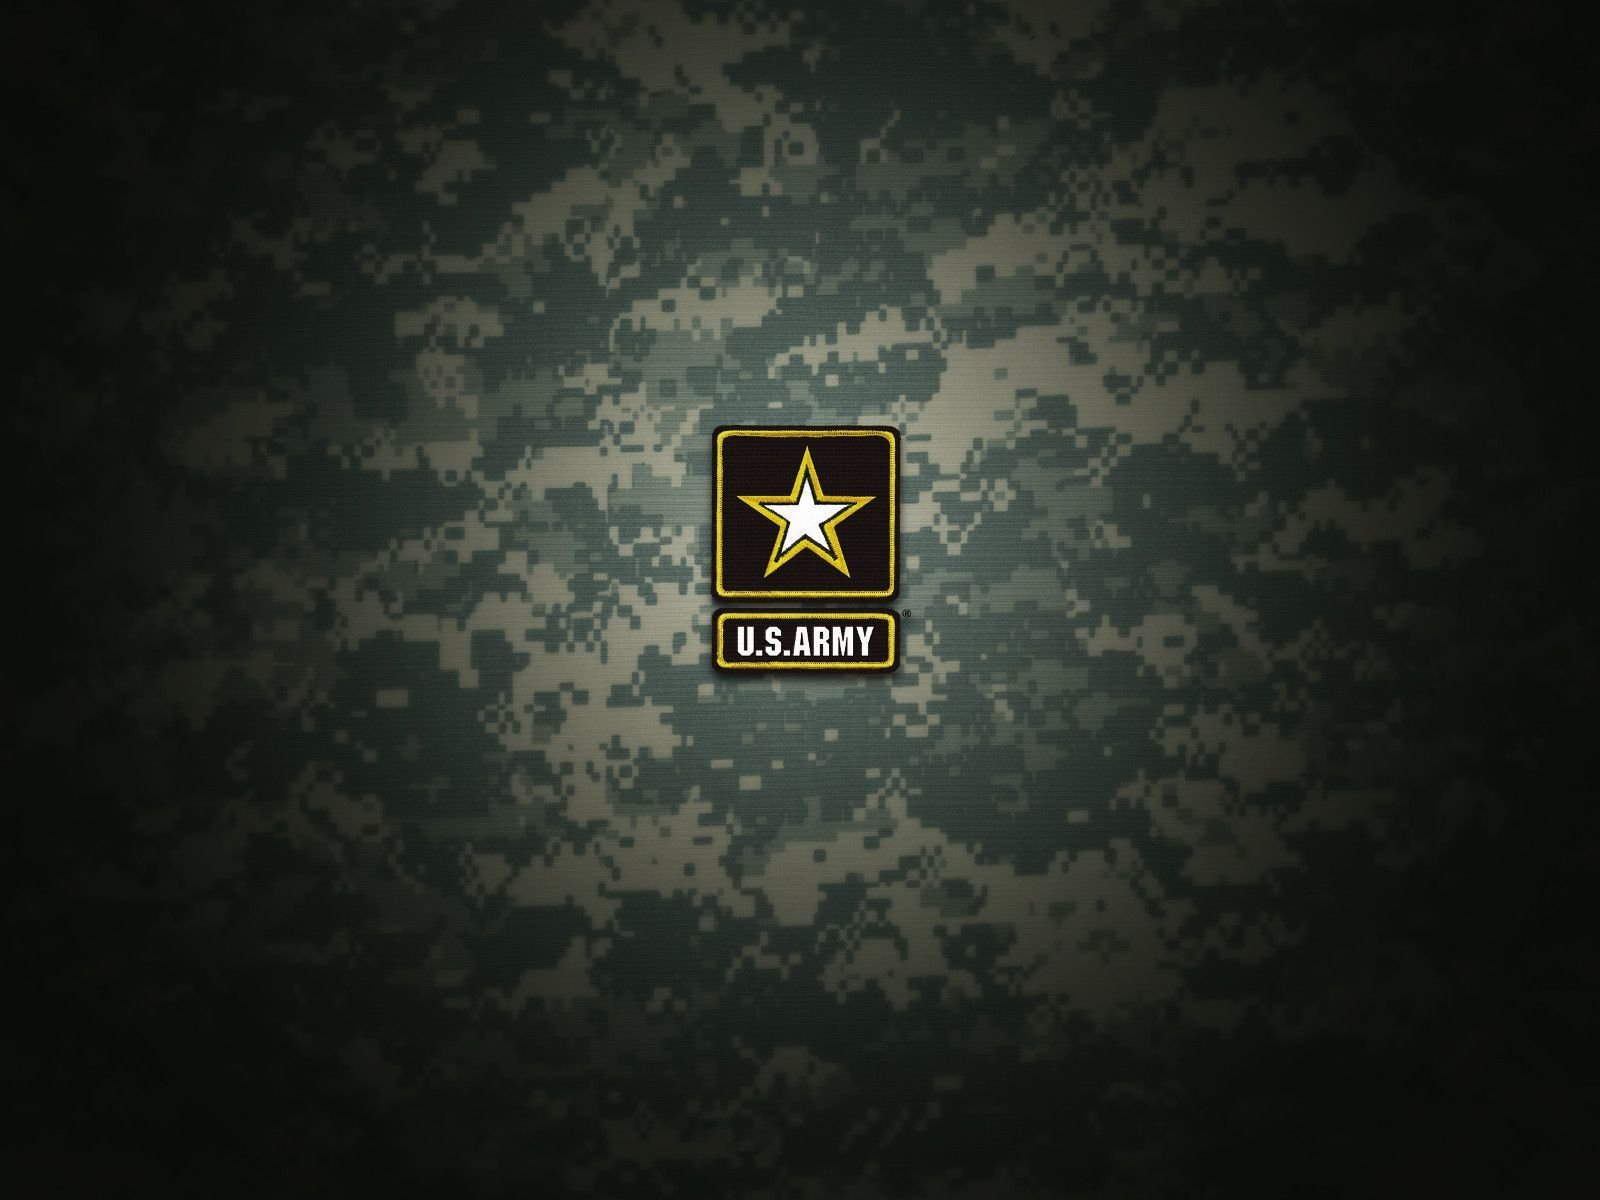 U.S Army Wallpaper